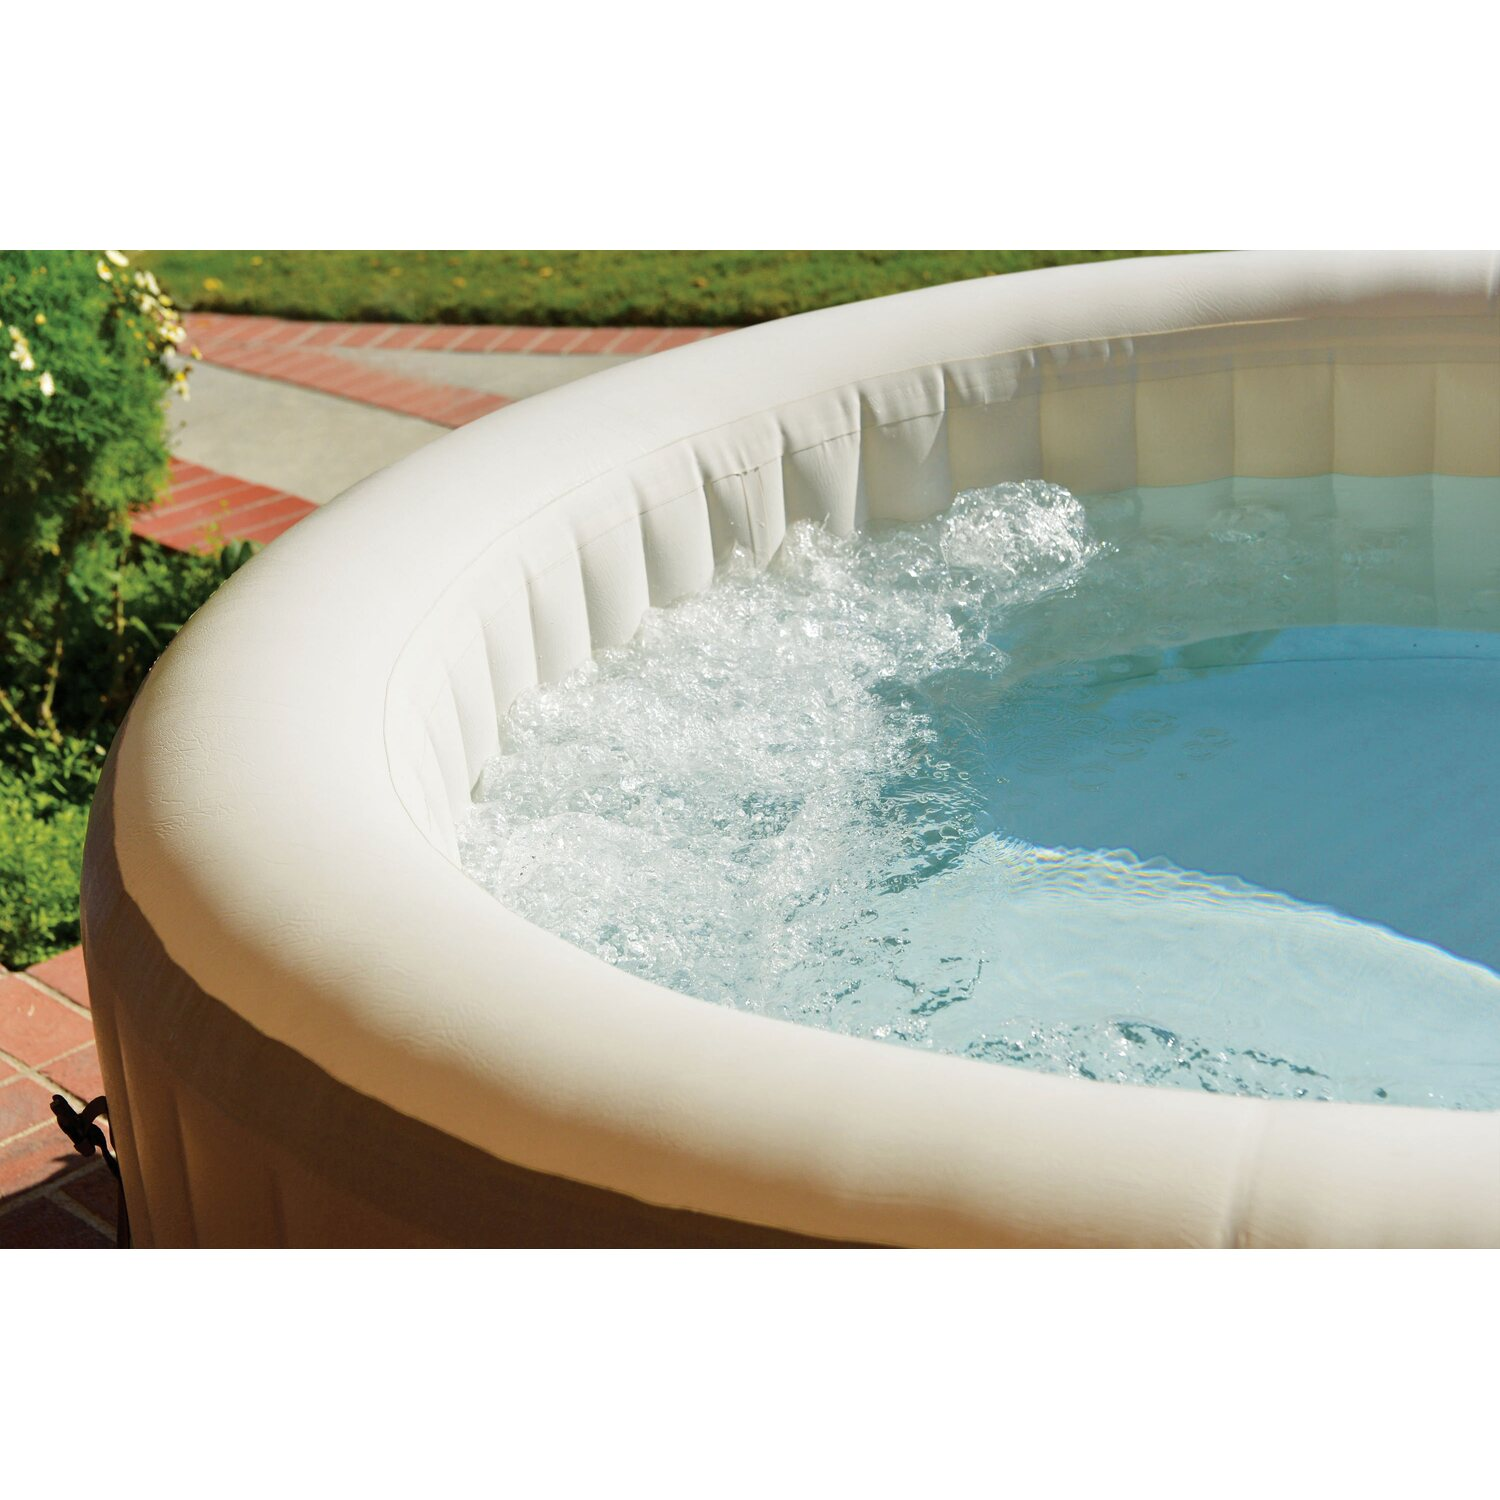 Intex whirlpool purespatm jet 77 bubble f r 4 personen for Obi intex pool